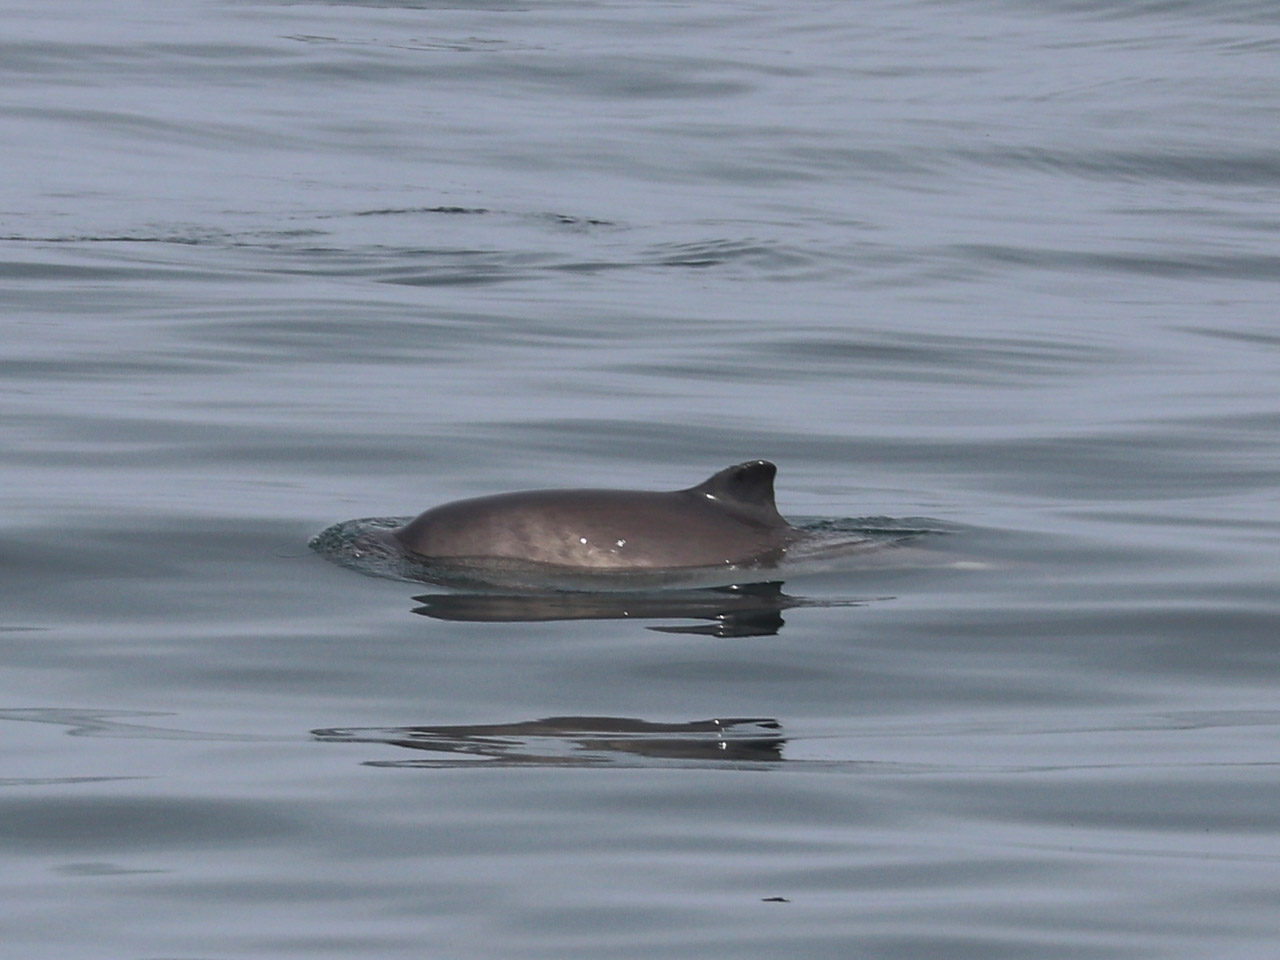 The triangular dorsal fin and back of a harbour porpoise shows as it surfaces